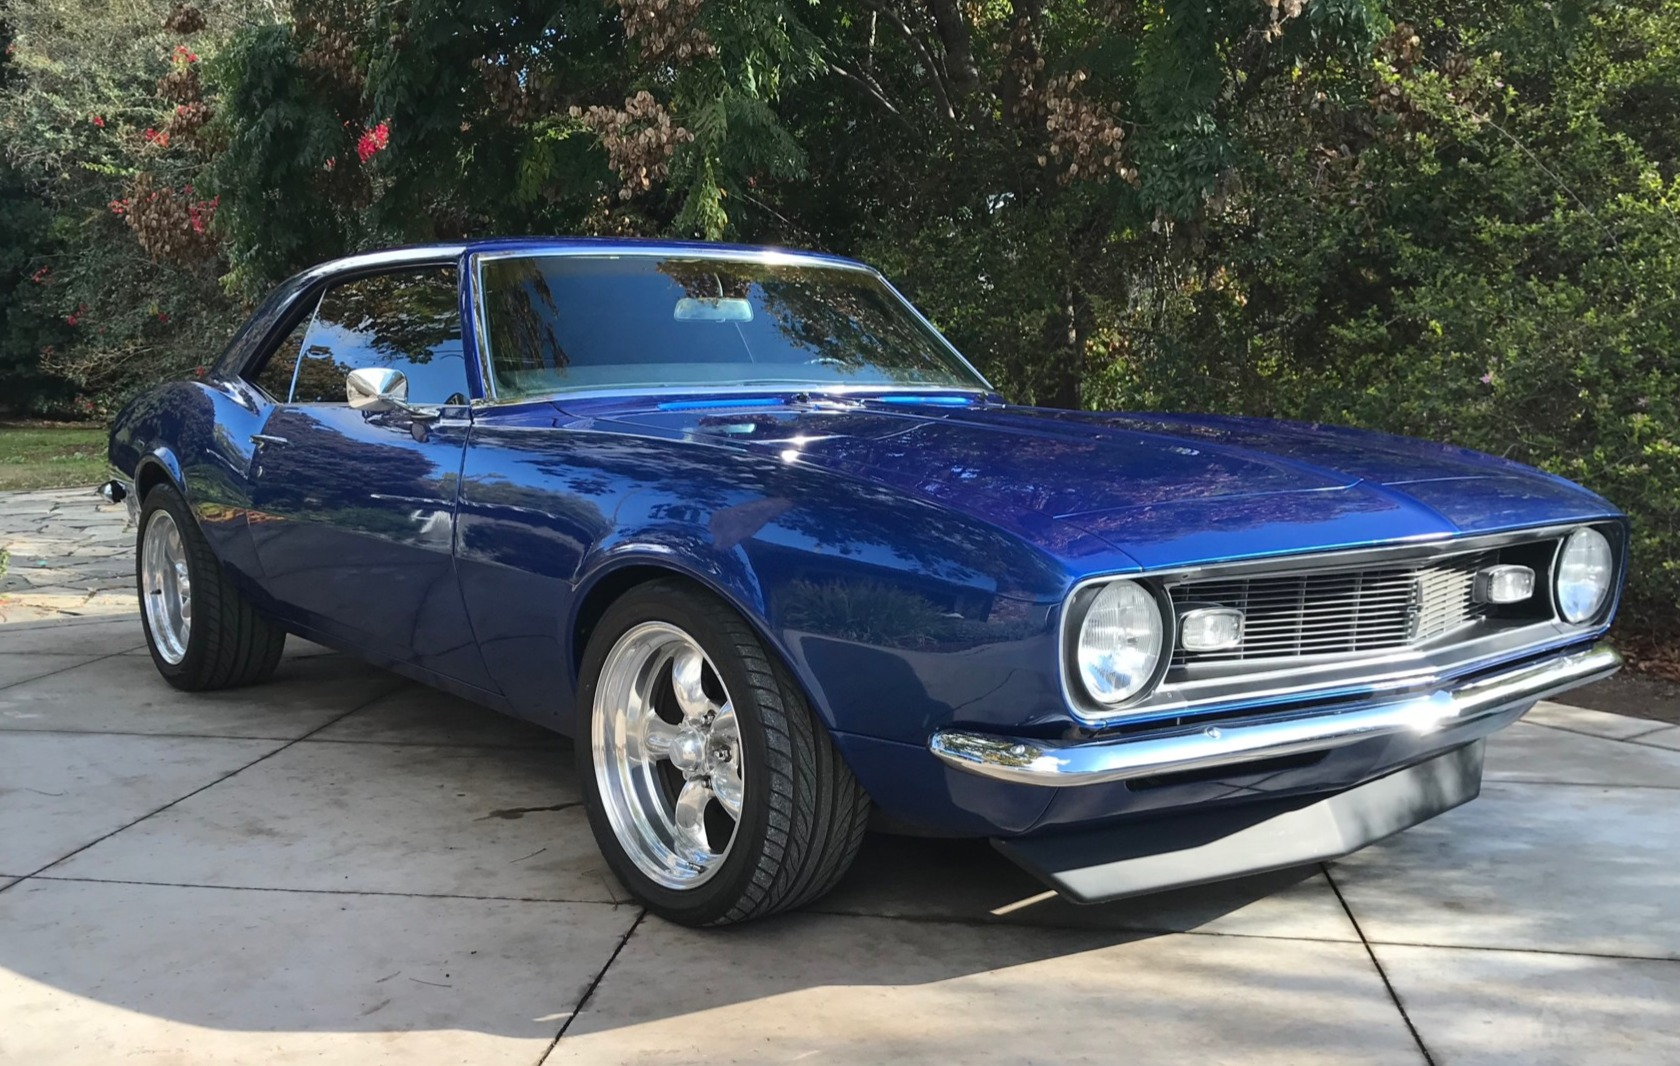 hight resolution of 1968 chevrolet camaro for sale on bat auctions closed on march 22 2019 lot 17 321 bring a trailer